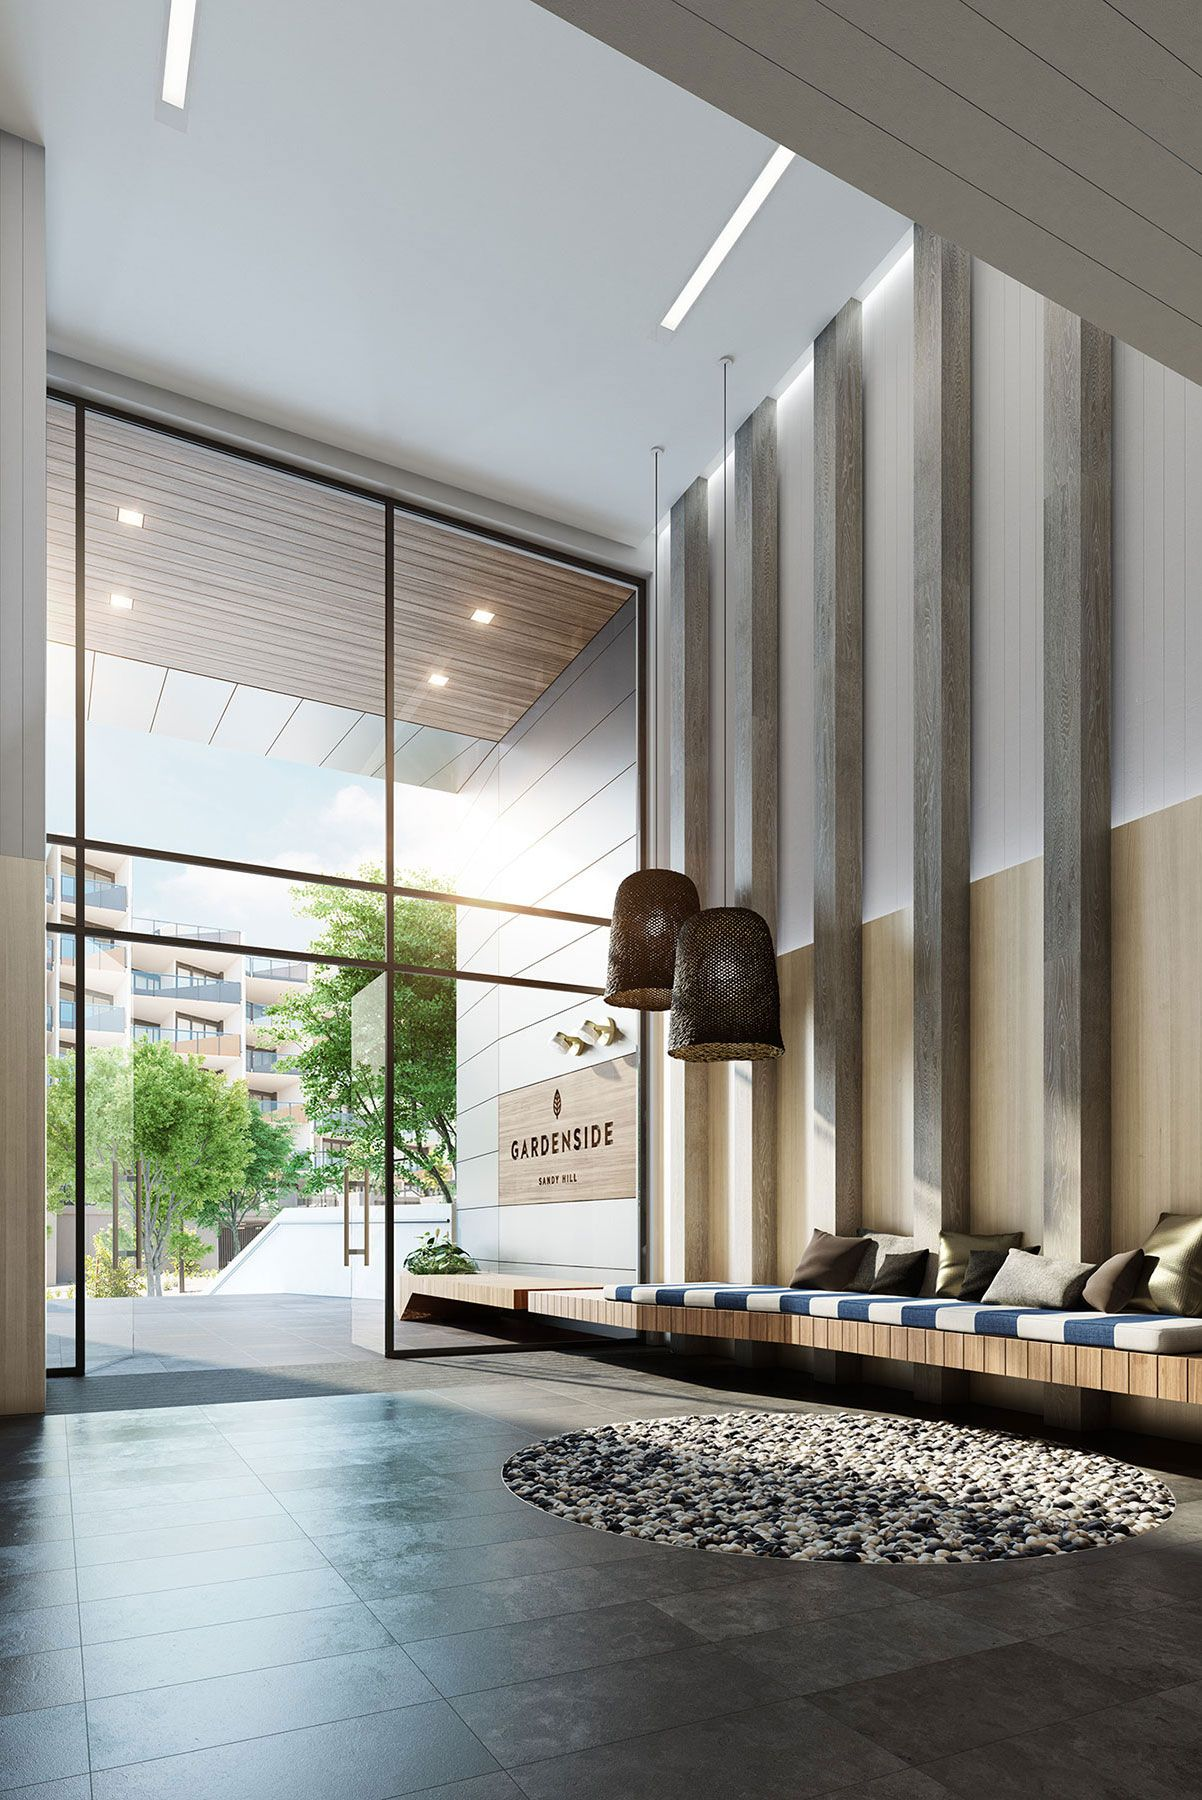 Pin by lee kanran on interior designs in 2019 pinterest - Office building interior design ideas ...